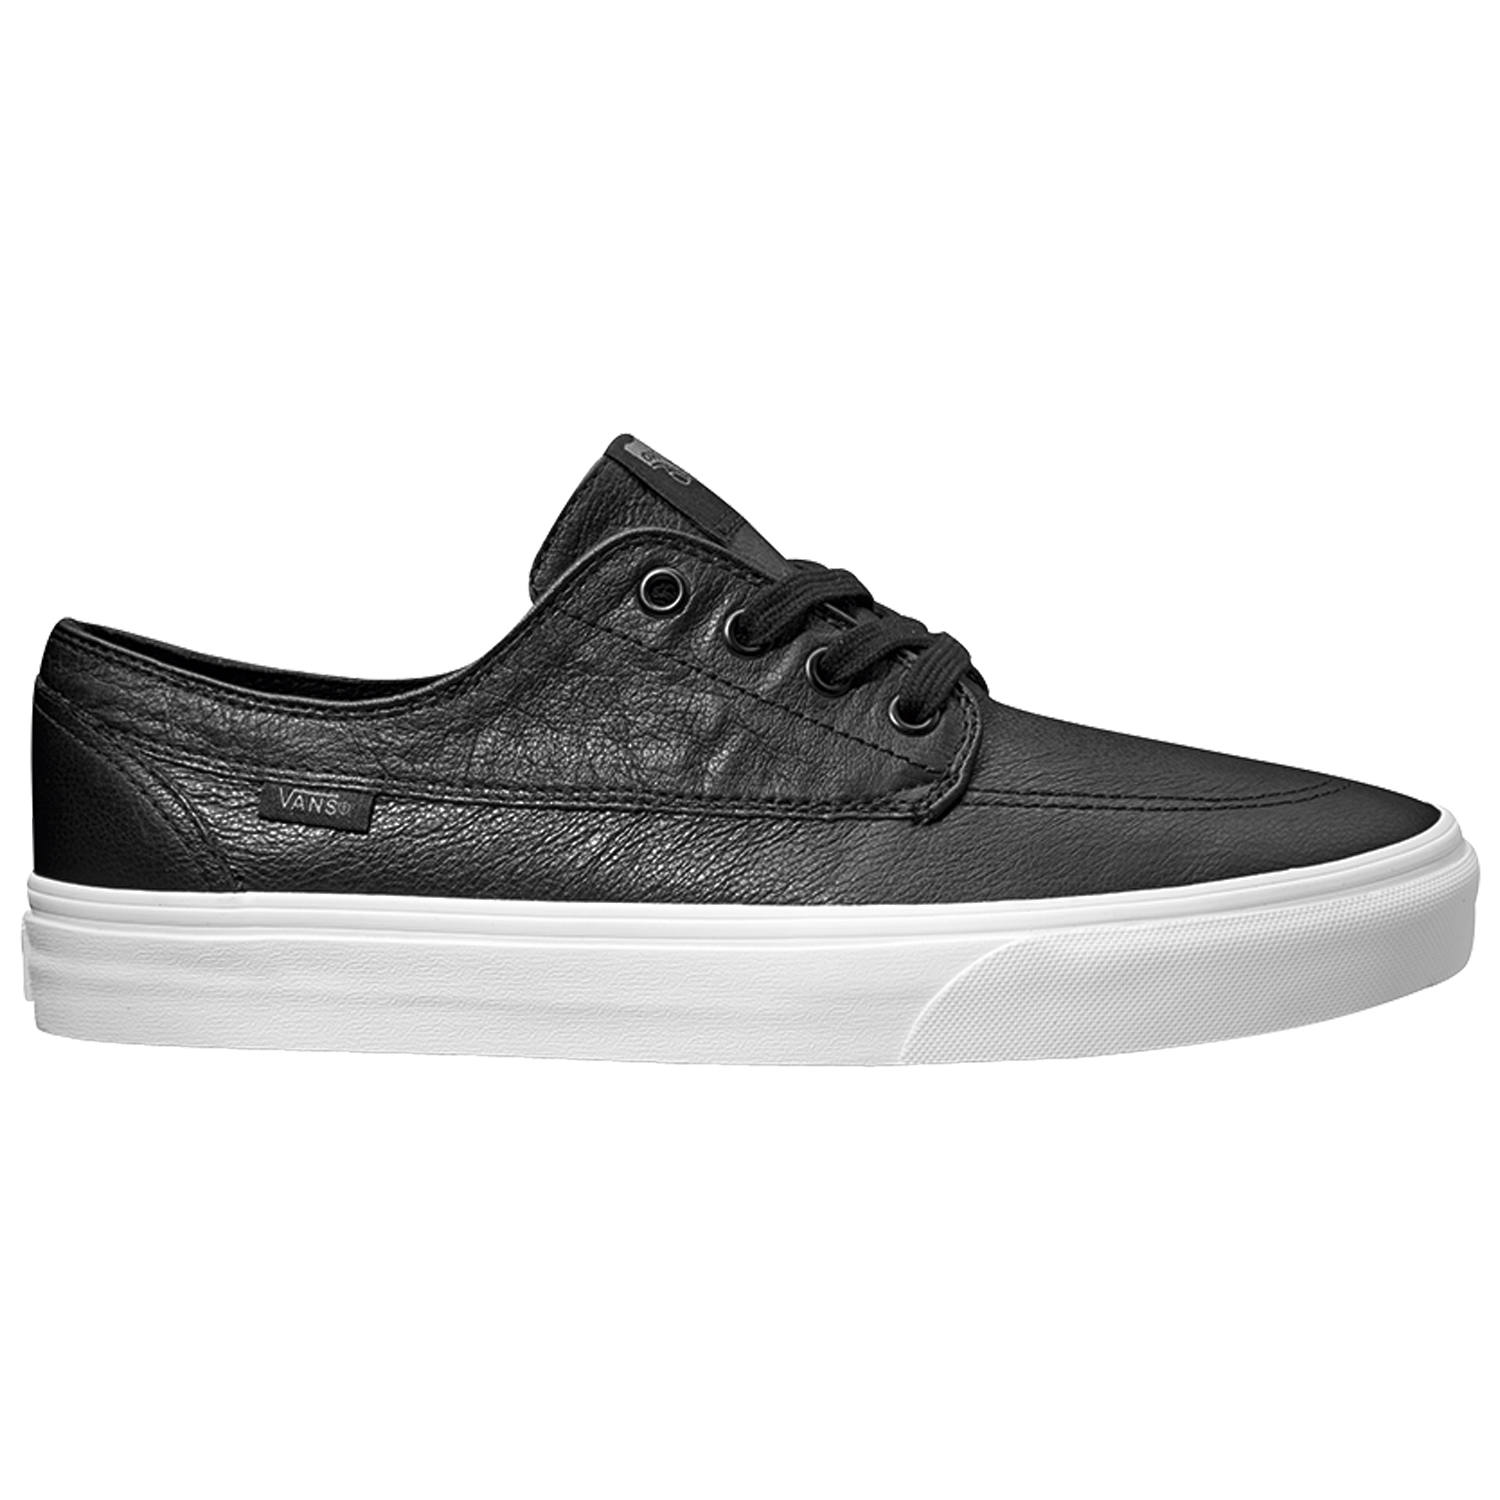 vans-brigata-prem-leather-black-true-white-159-90